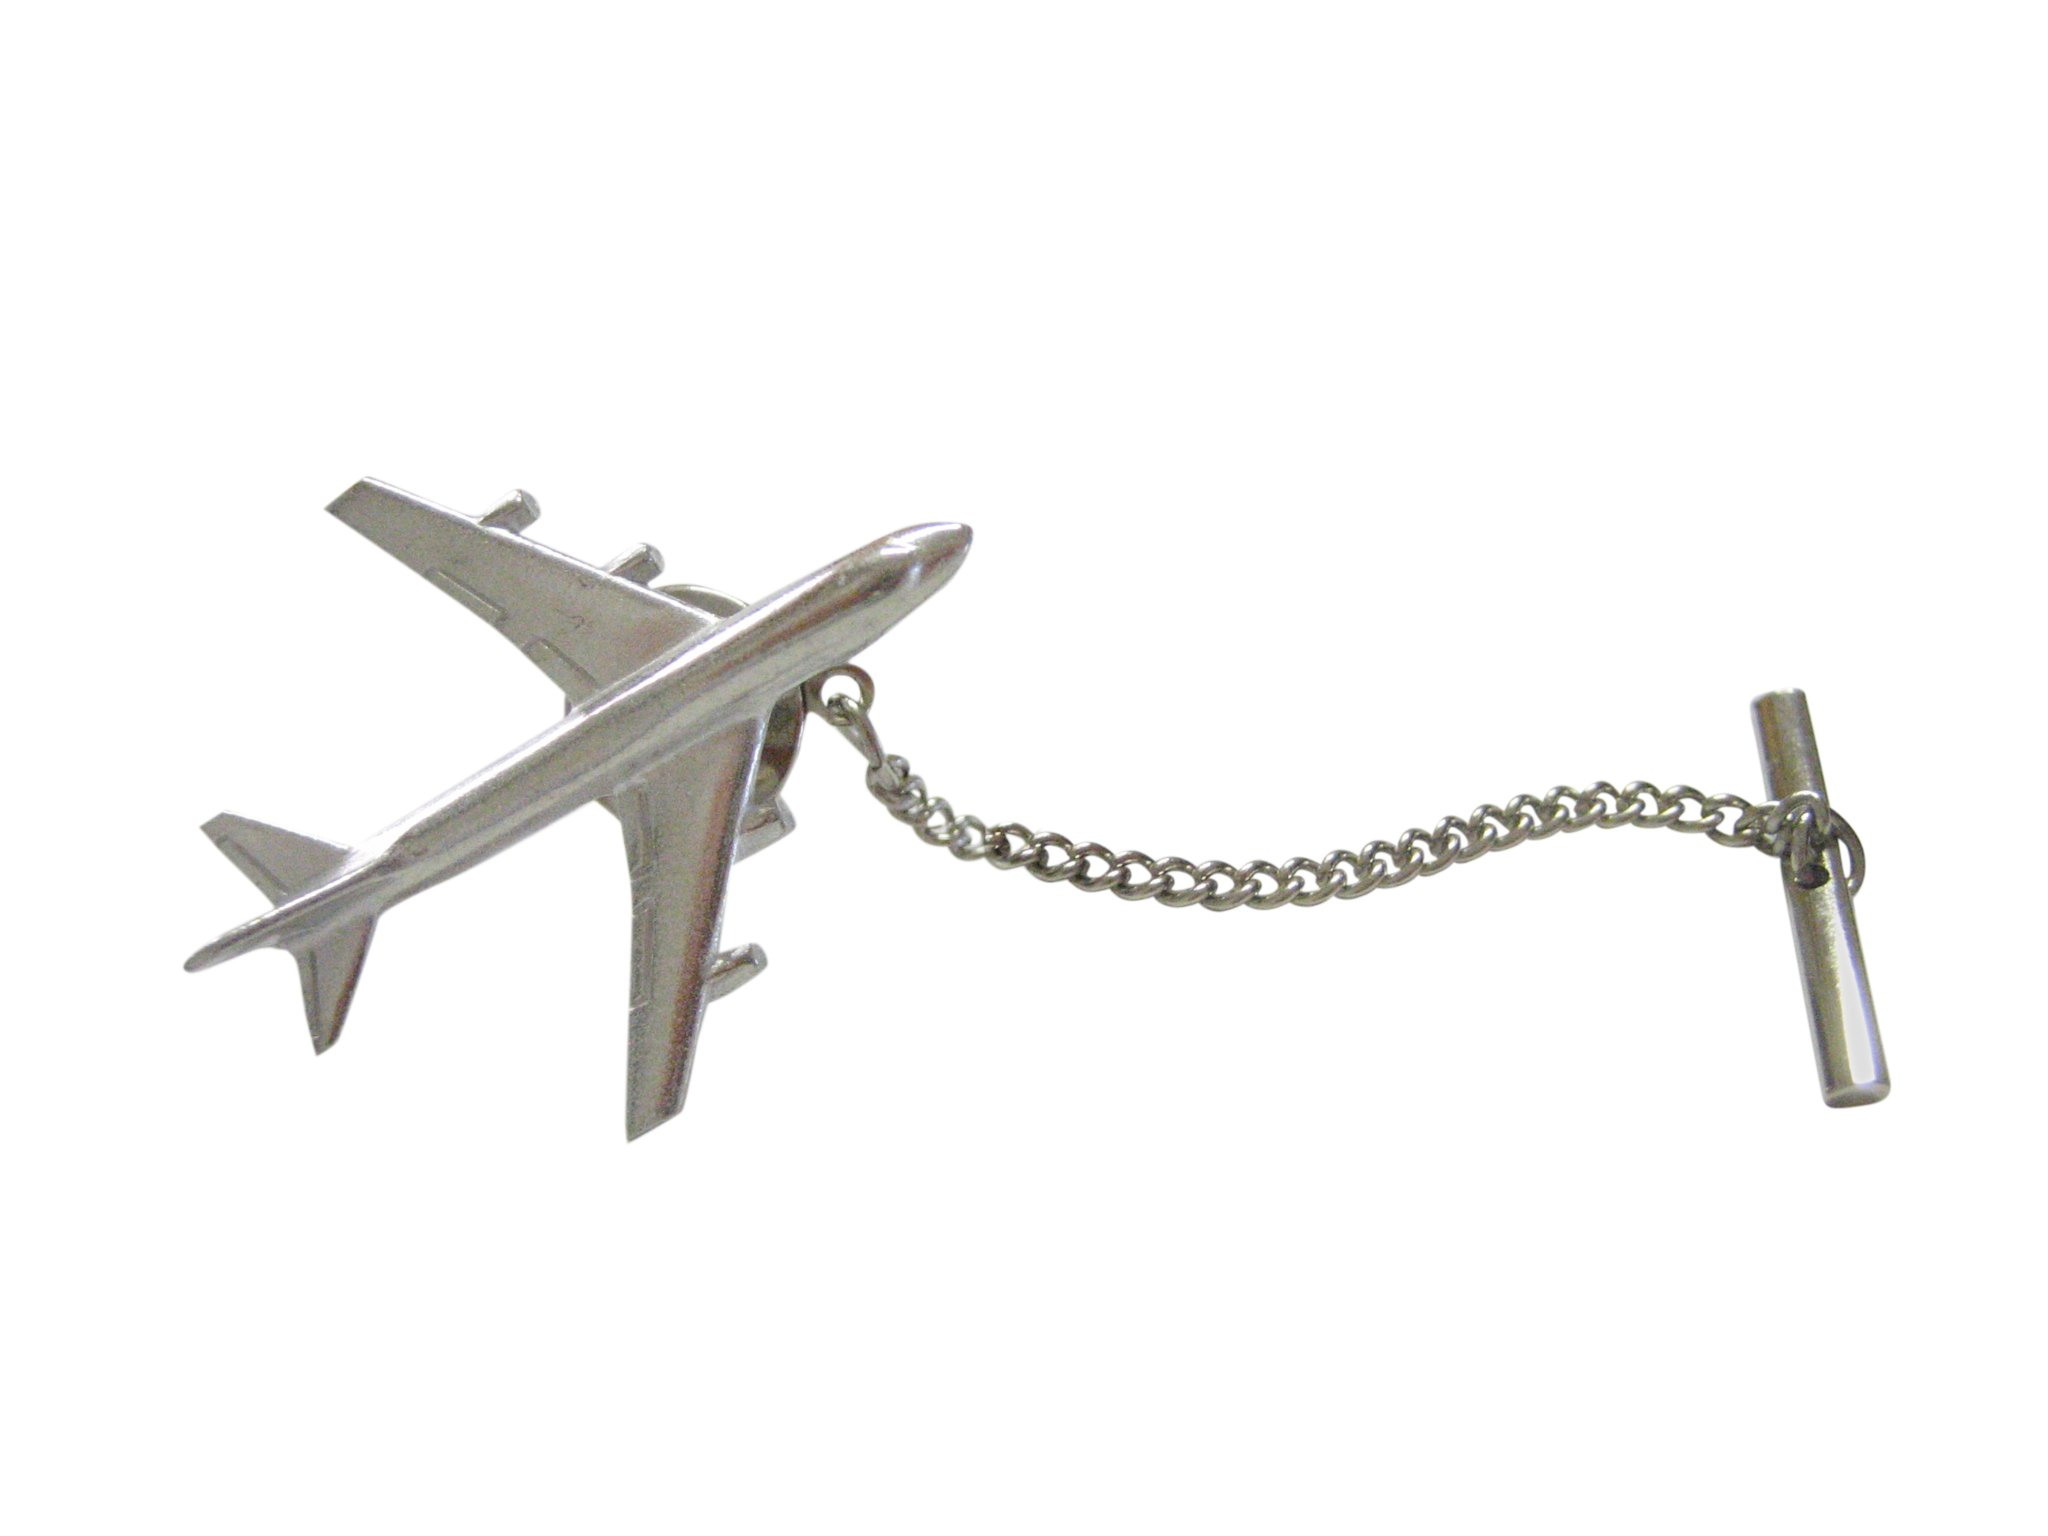 Smooth Large Commercial Jet Plane Tie Tack